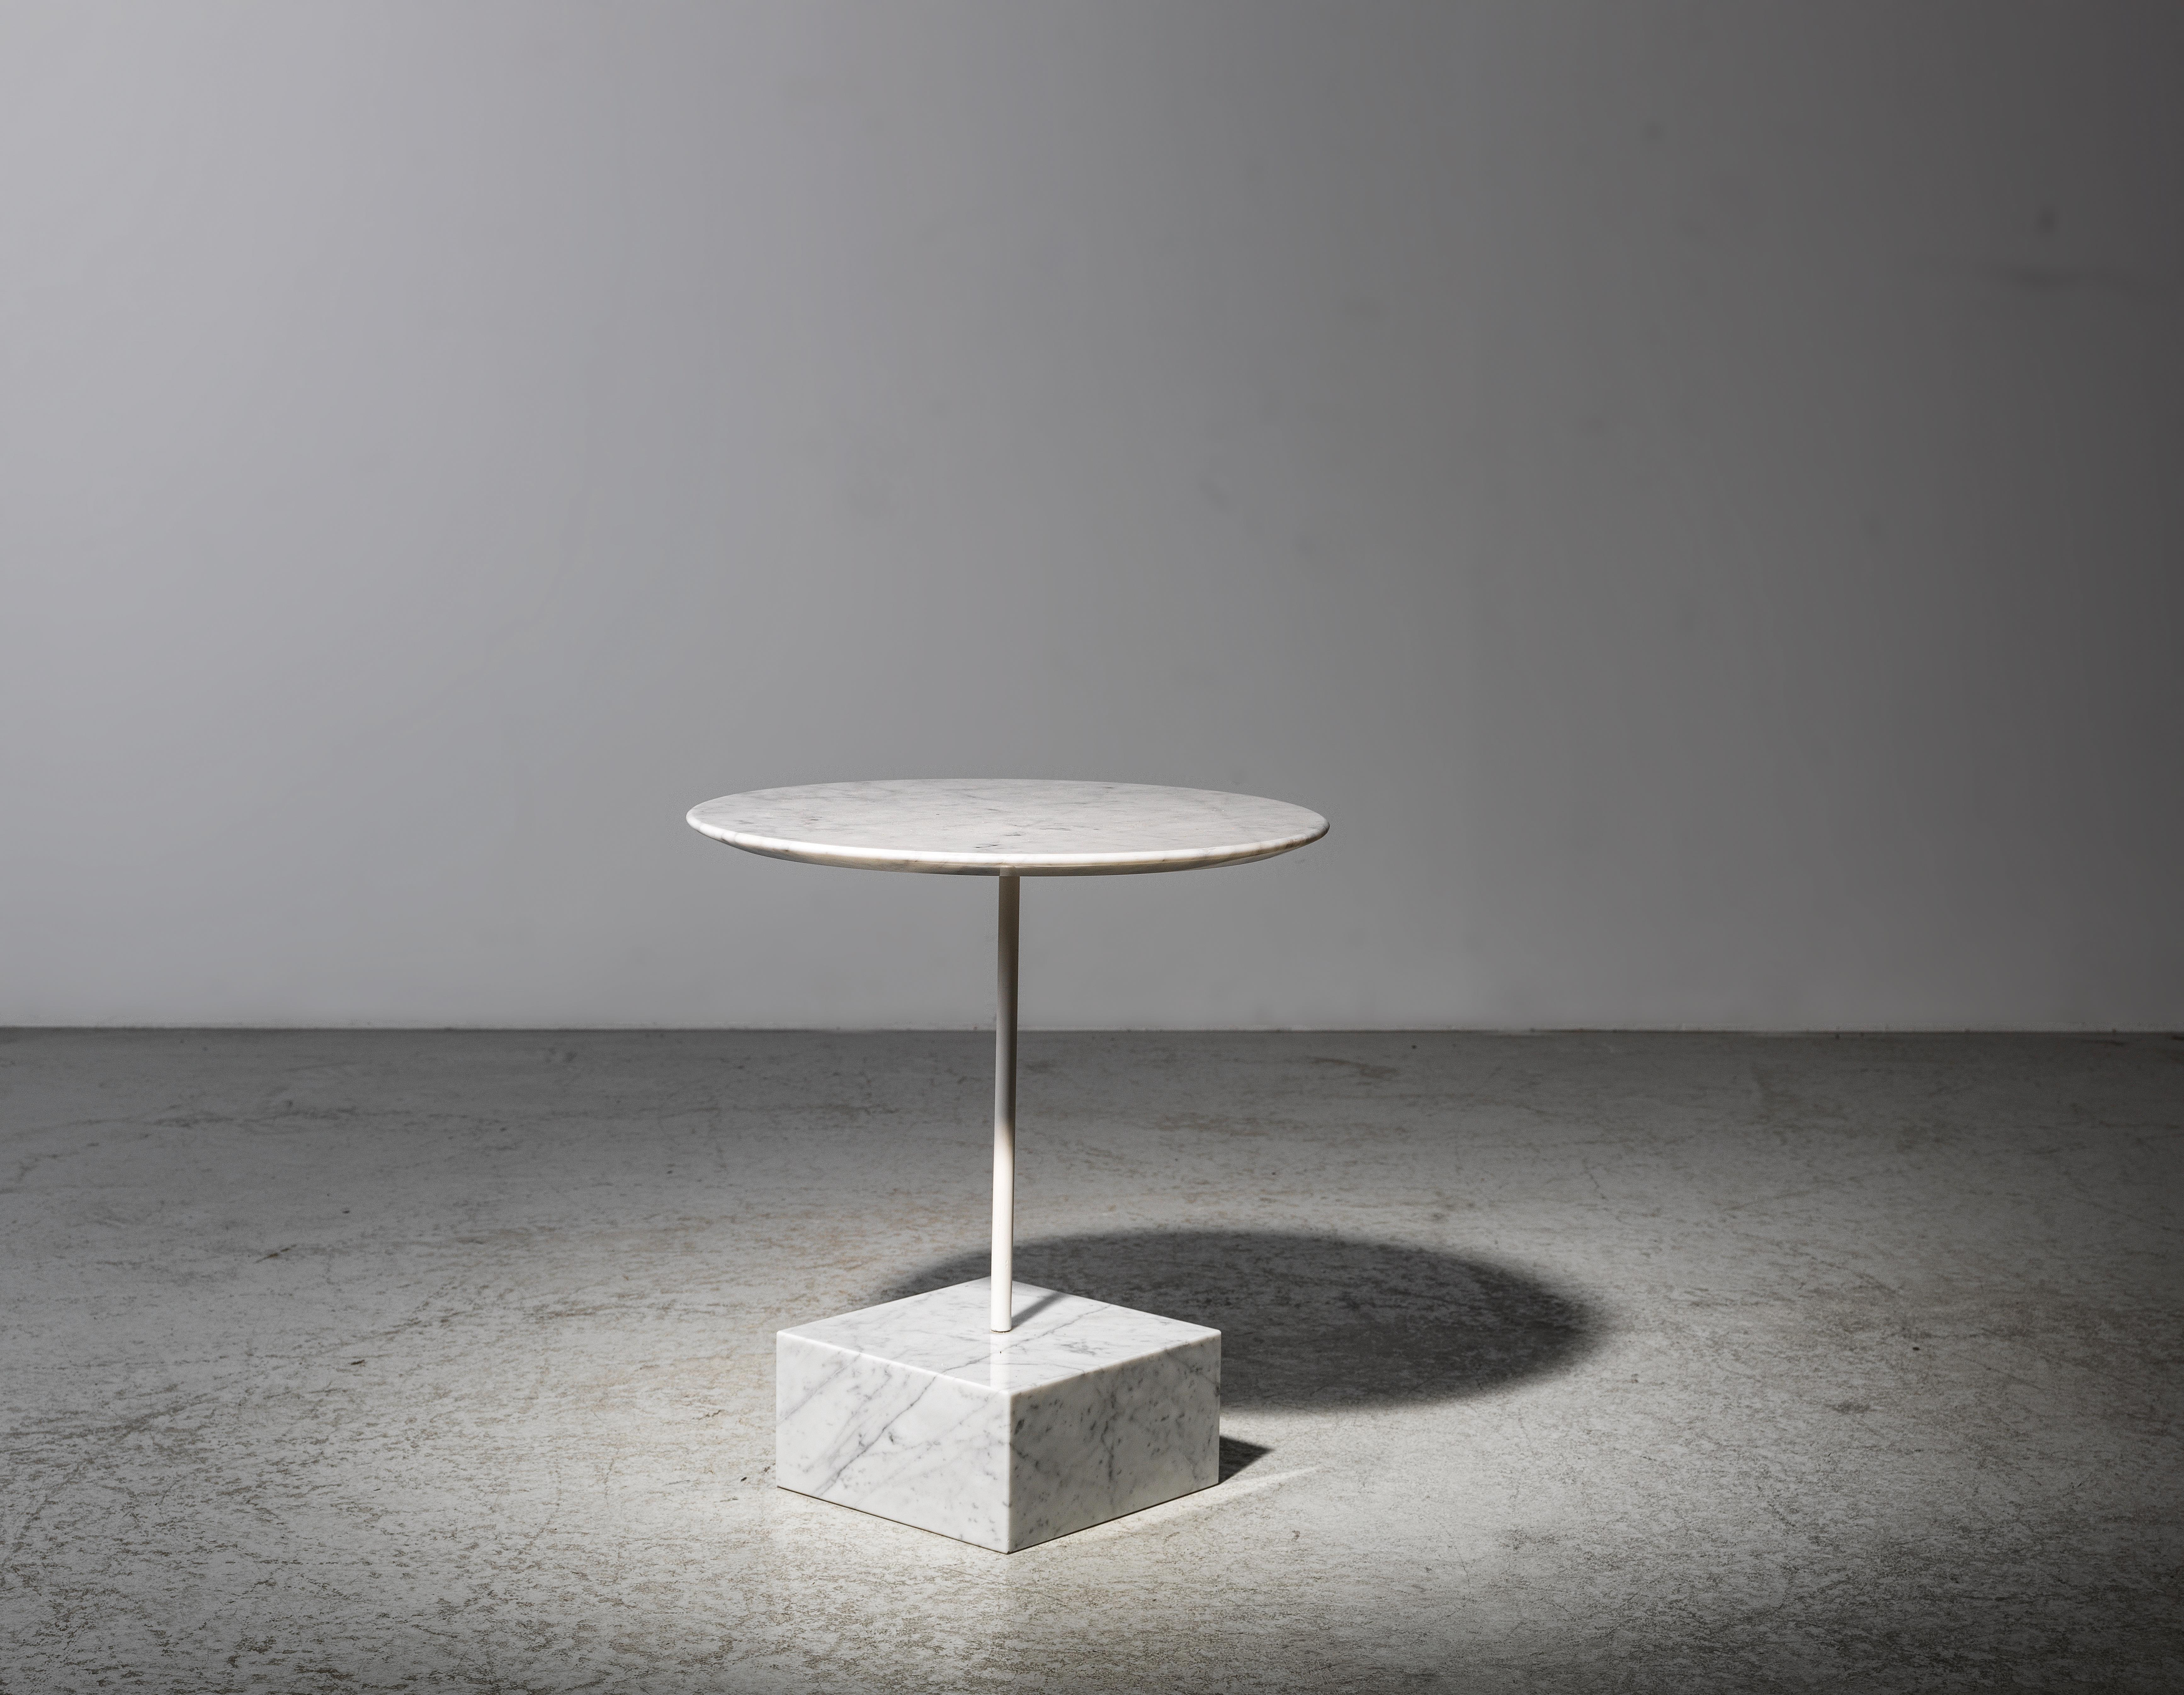 Picture of: A Side Table Coffee Table Model Gueridon Primavera Designed By Ettore Sottsass Design 2019 10 02 Estimate Eur 3 200 To Eur 4 000 Dorotheum